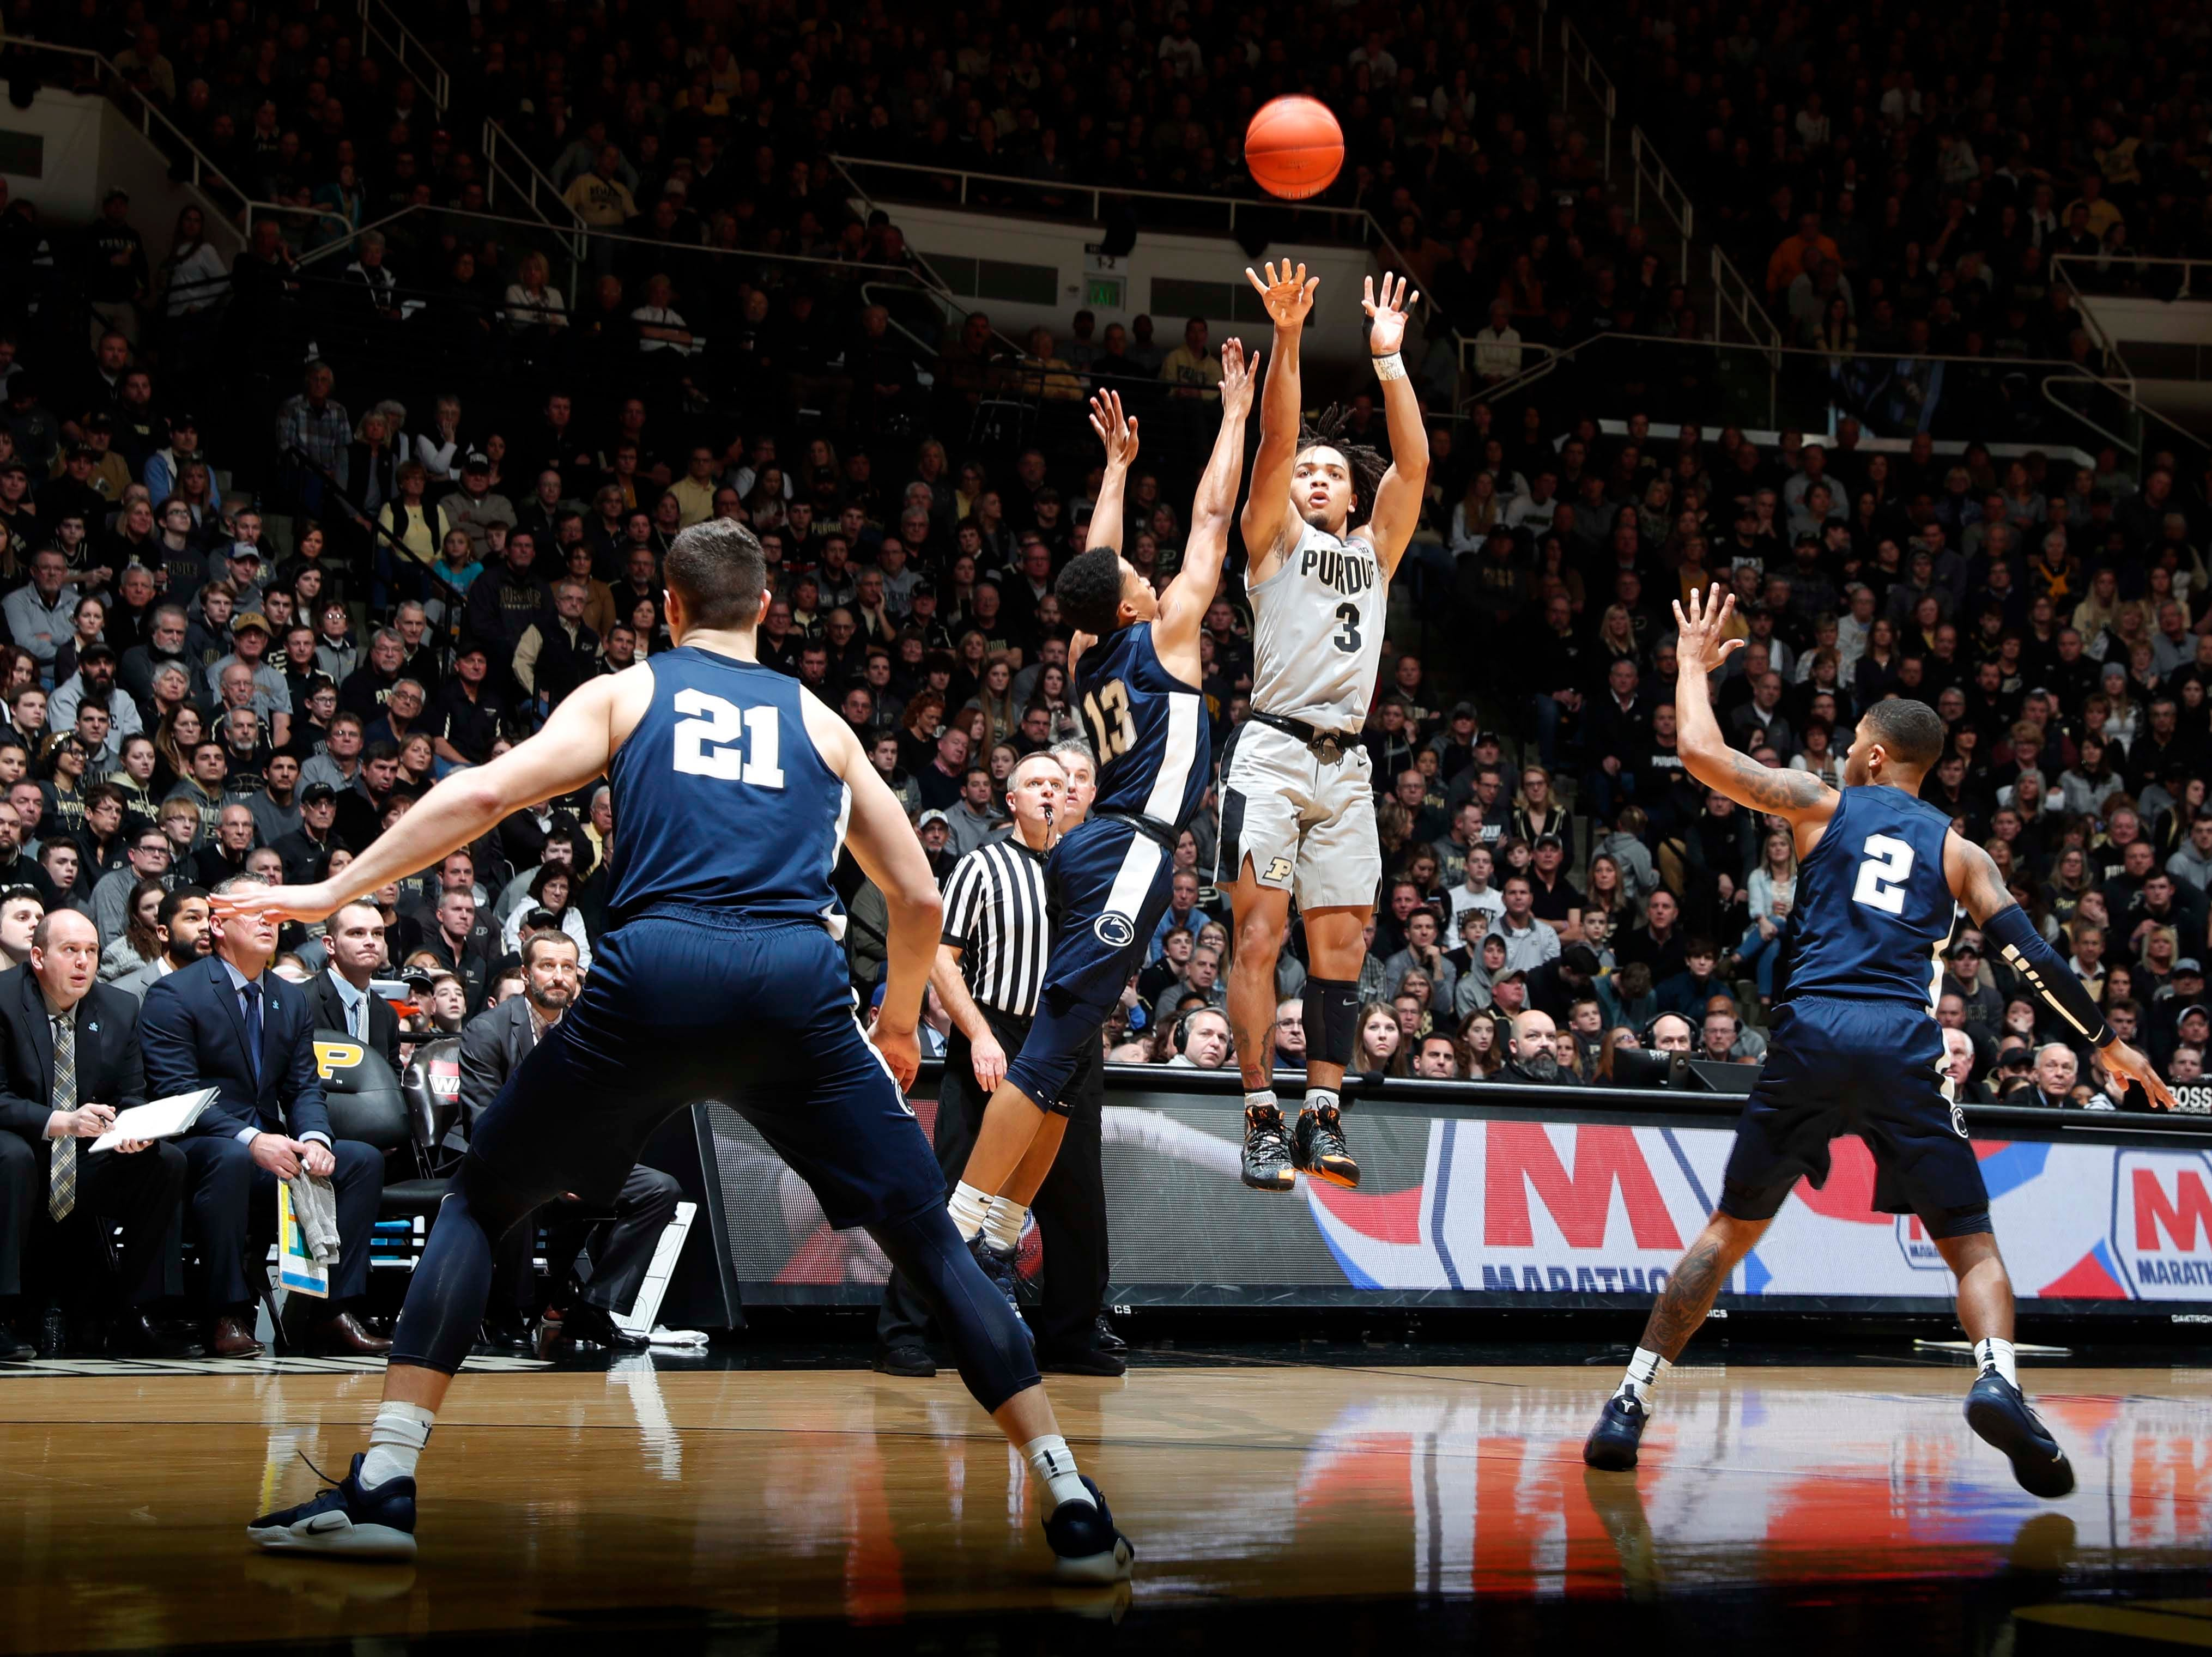 Purdue Boilermakers guard Carsen Edwards takes a three point shot against Penn State Nittany Lions Rasir Bolton (13) during the second half at Mackey Arena.